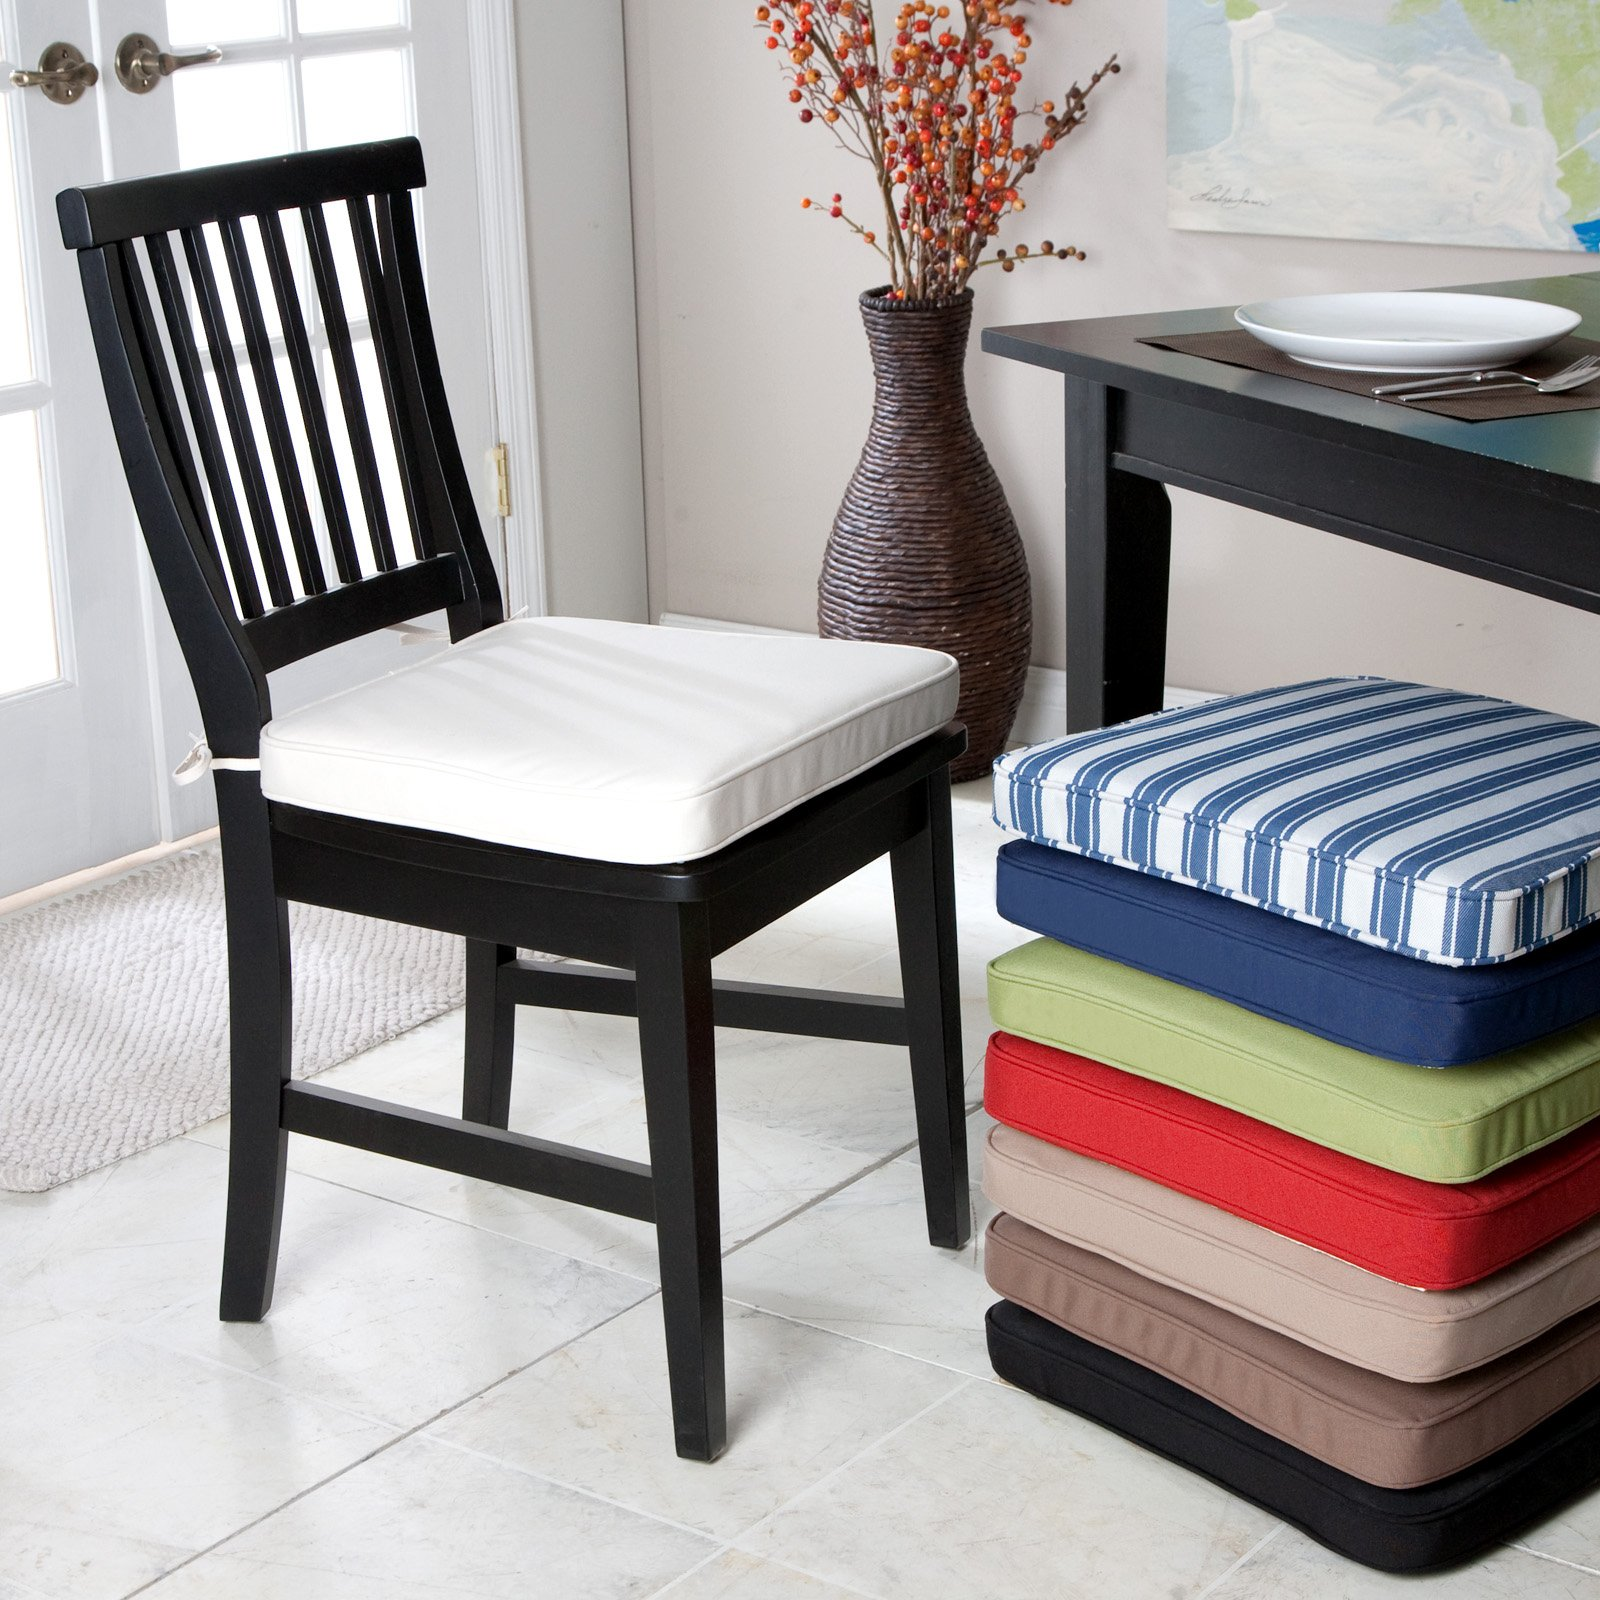 How To Make Dining Room Chair Cushions